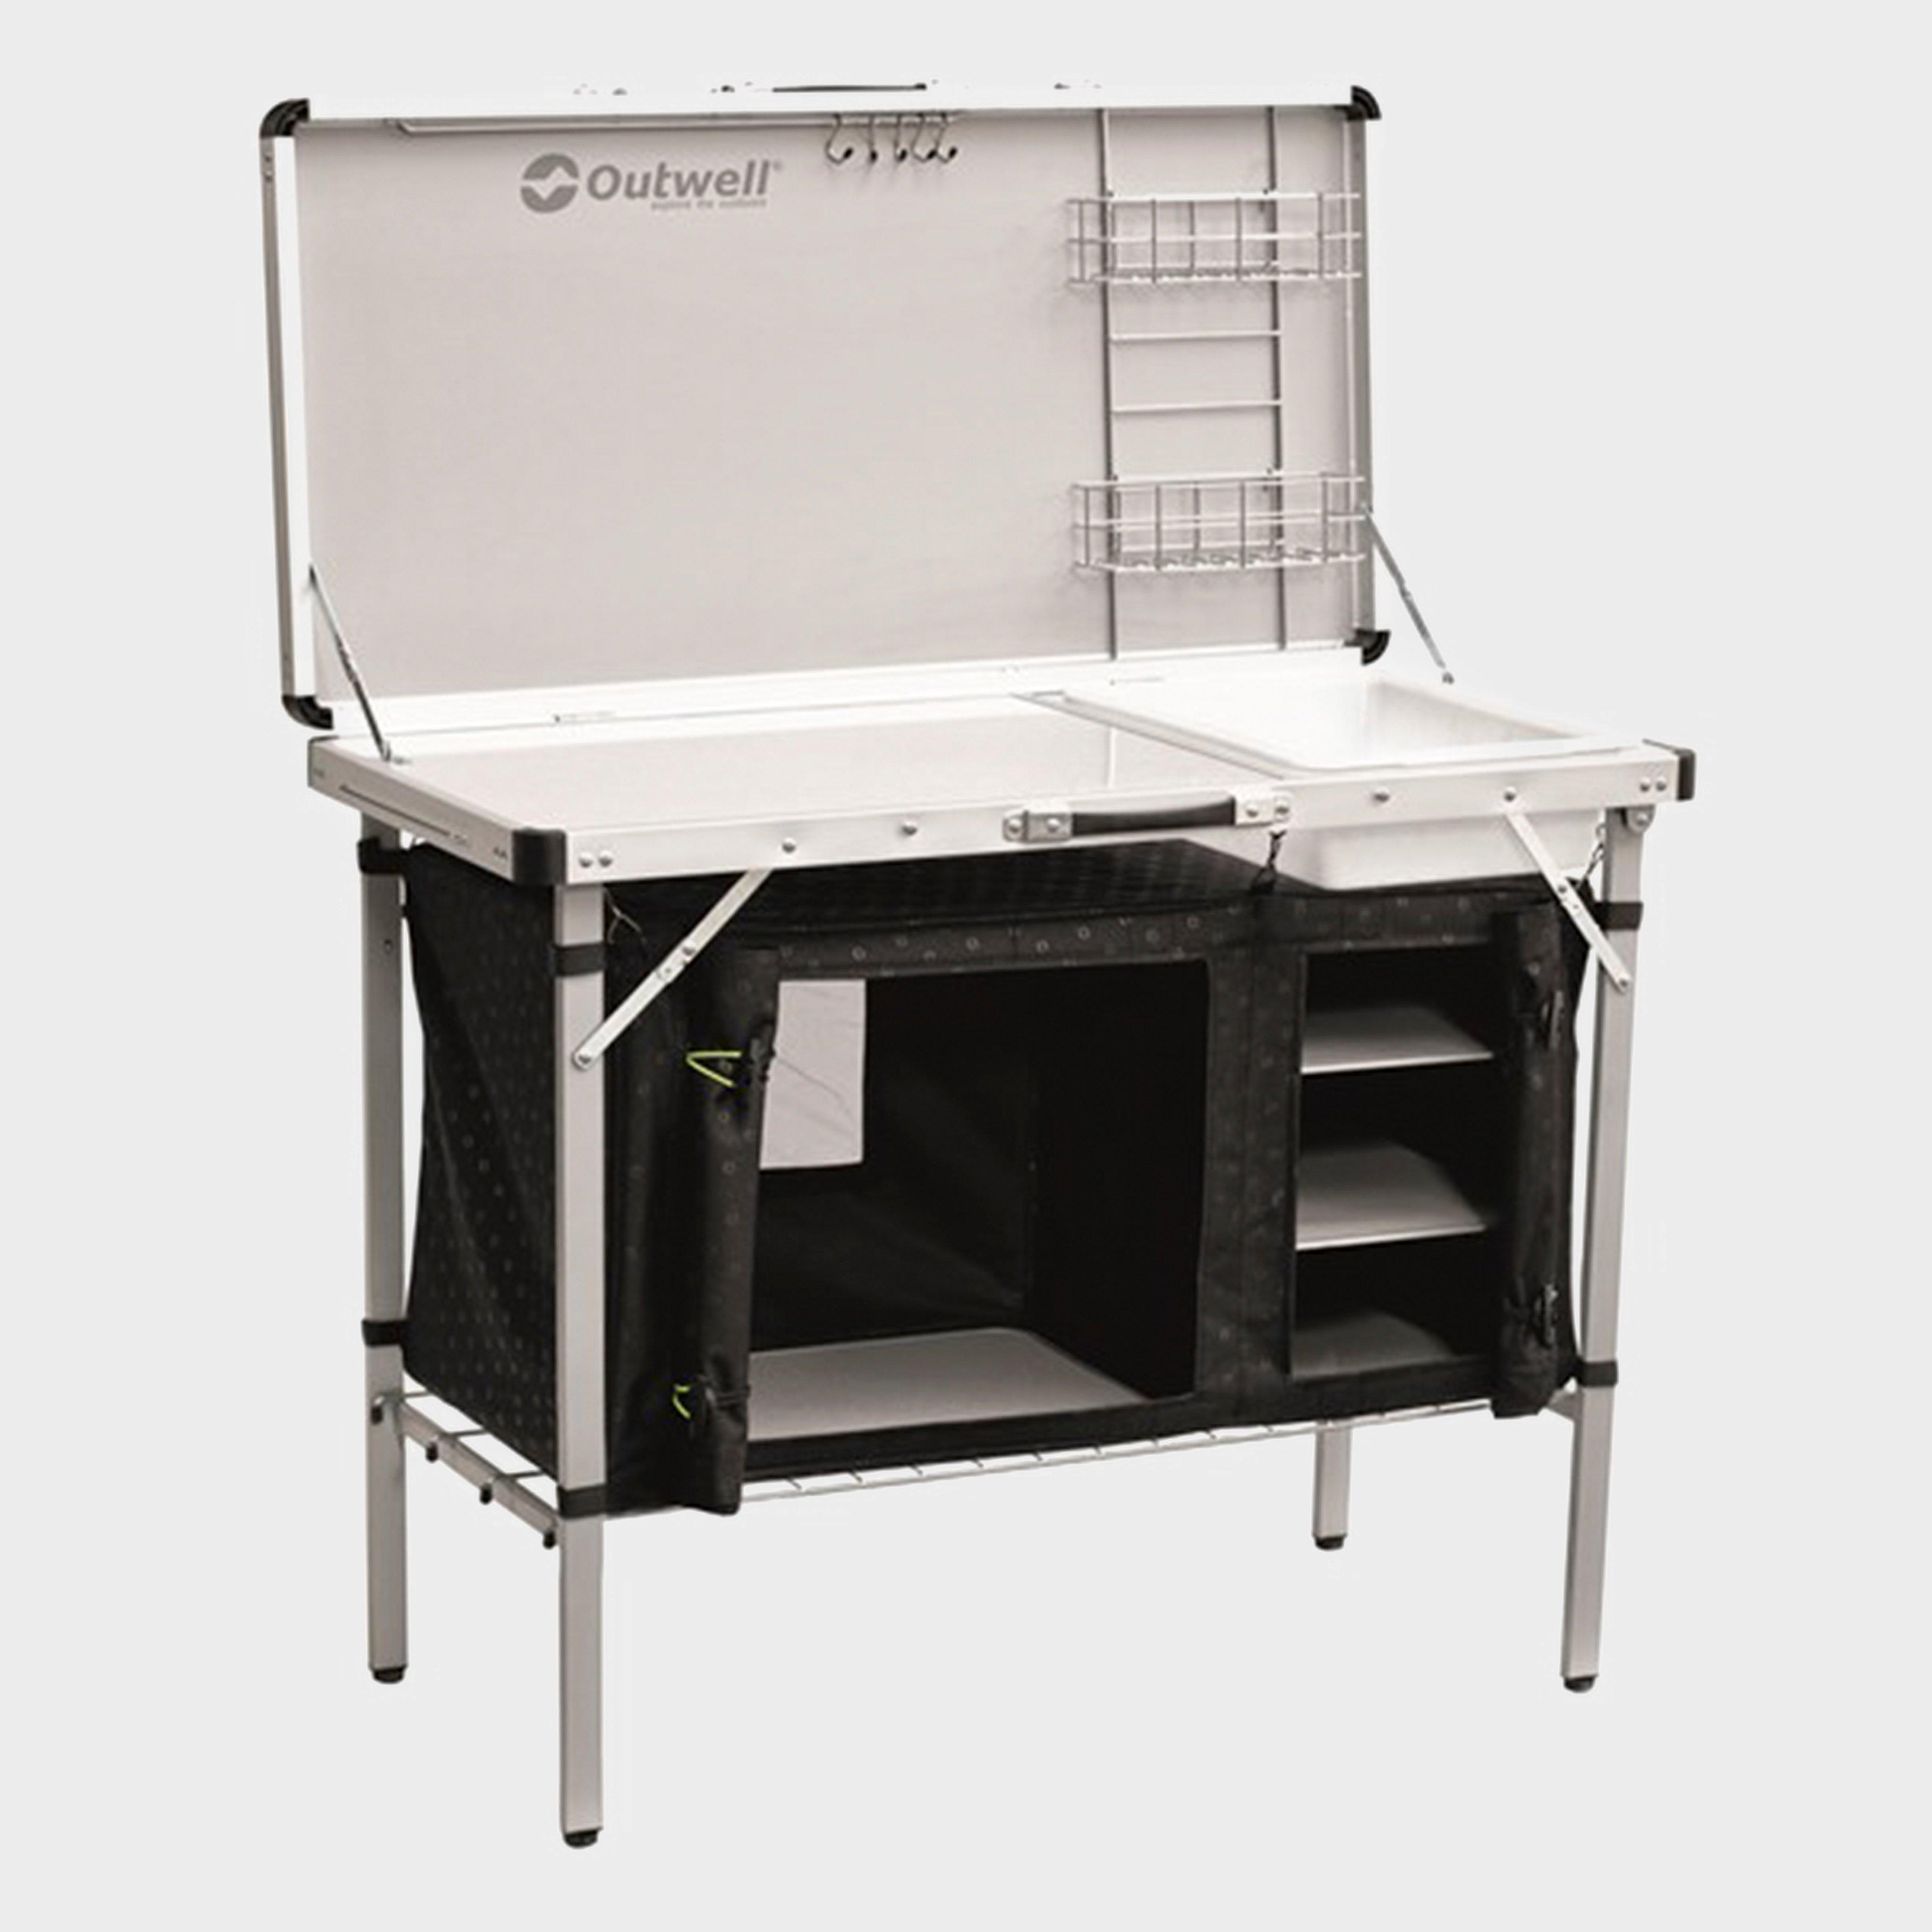 Outwell Drayton Kitchen Table Review